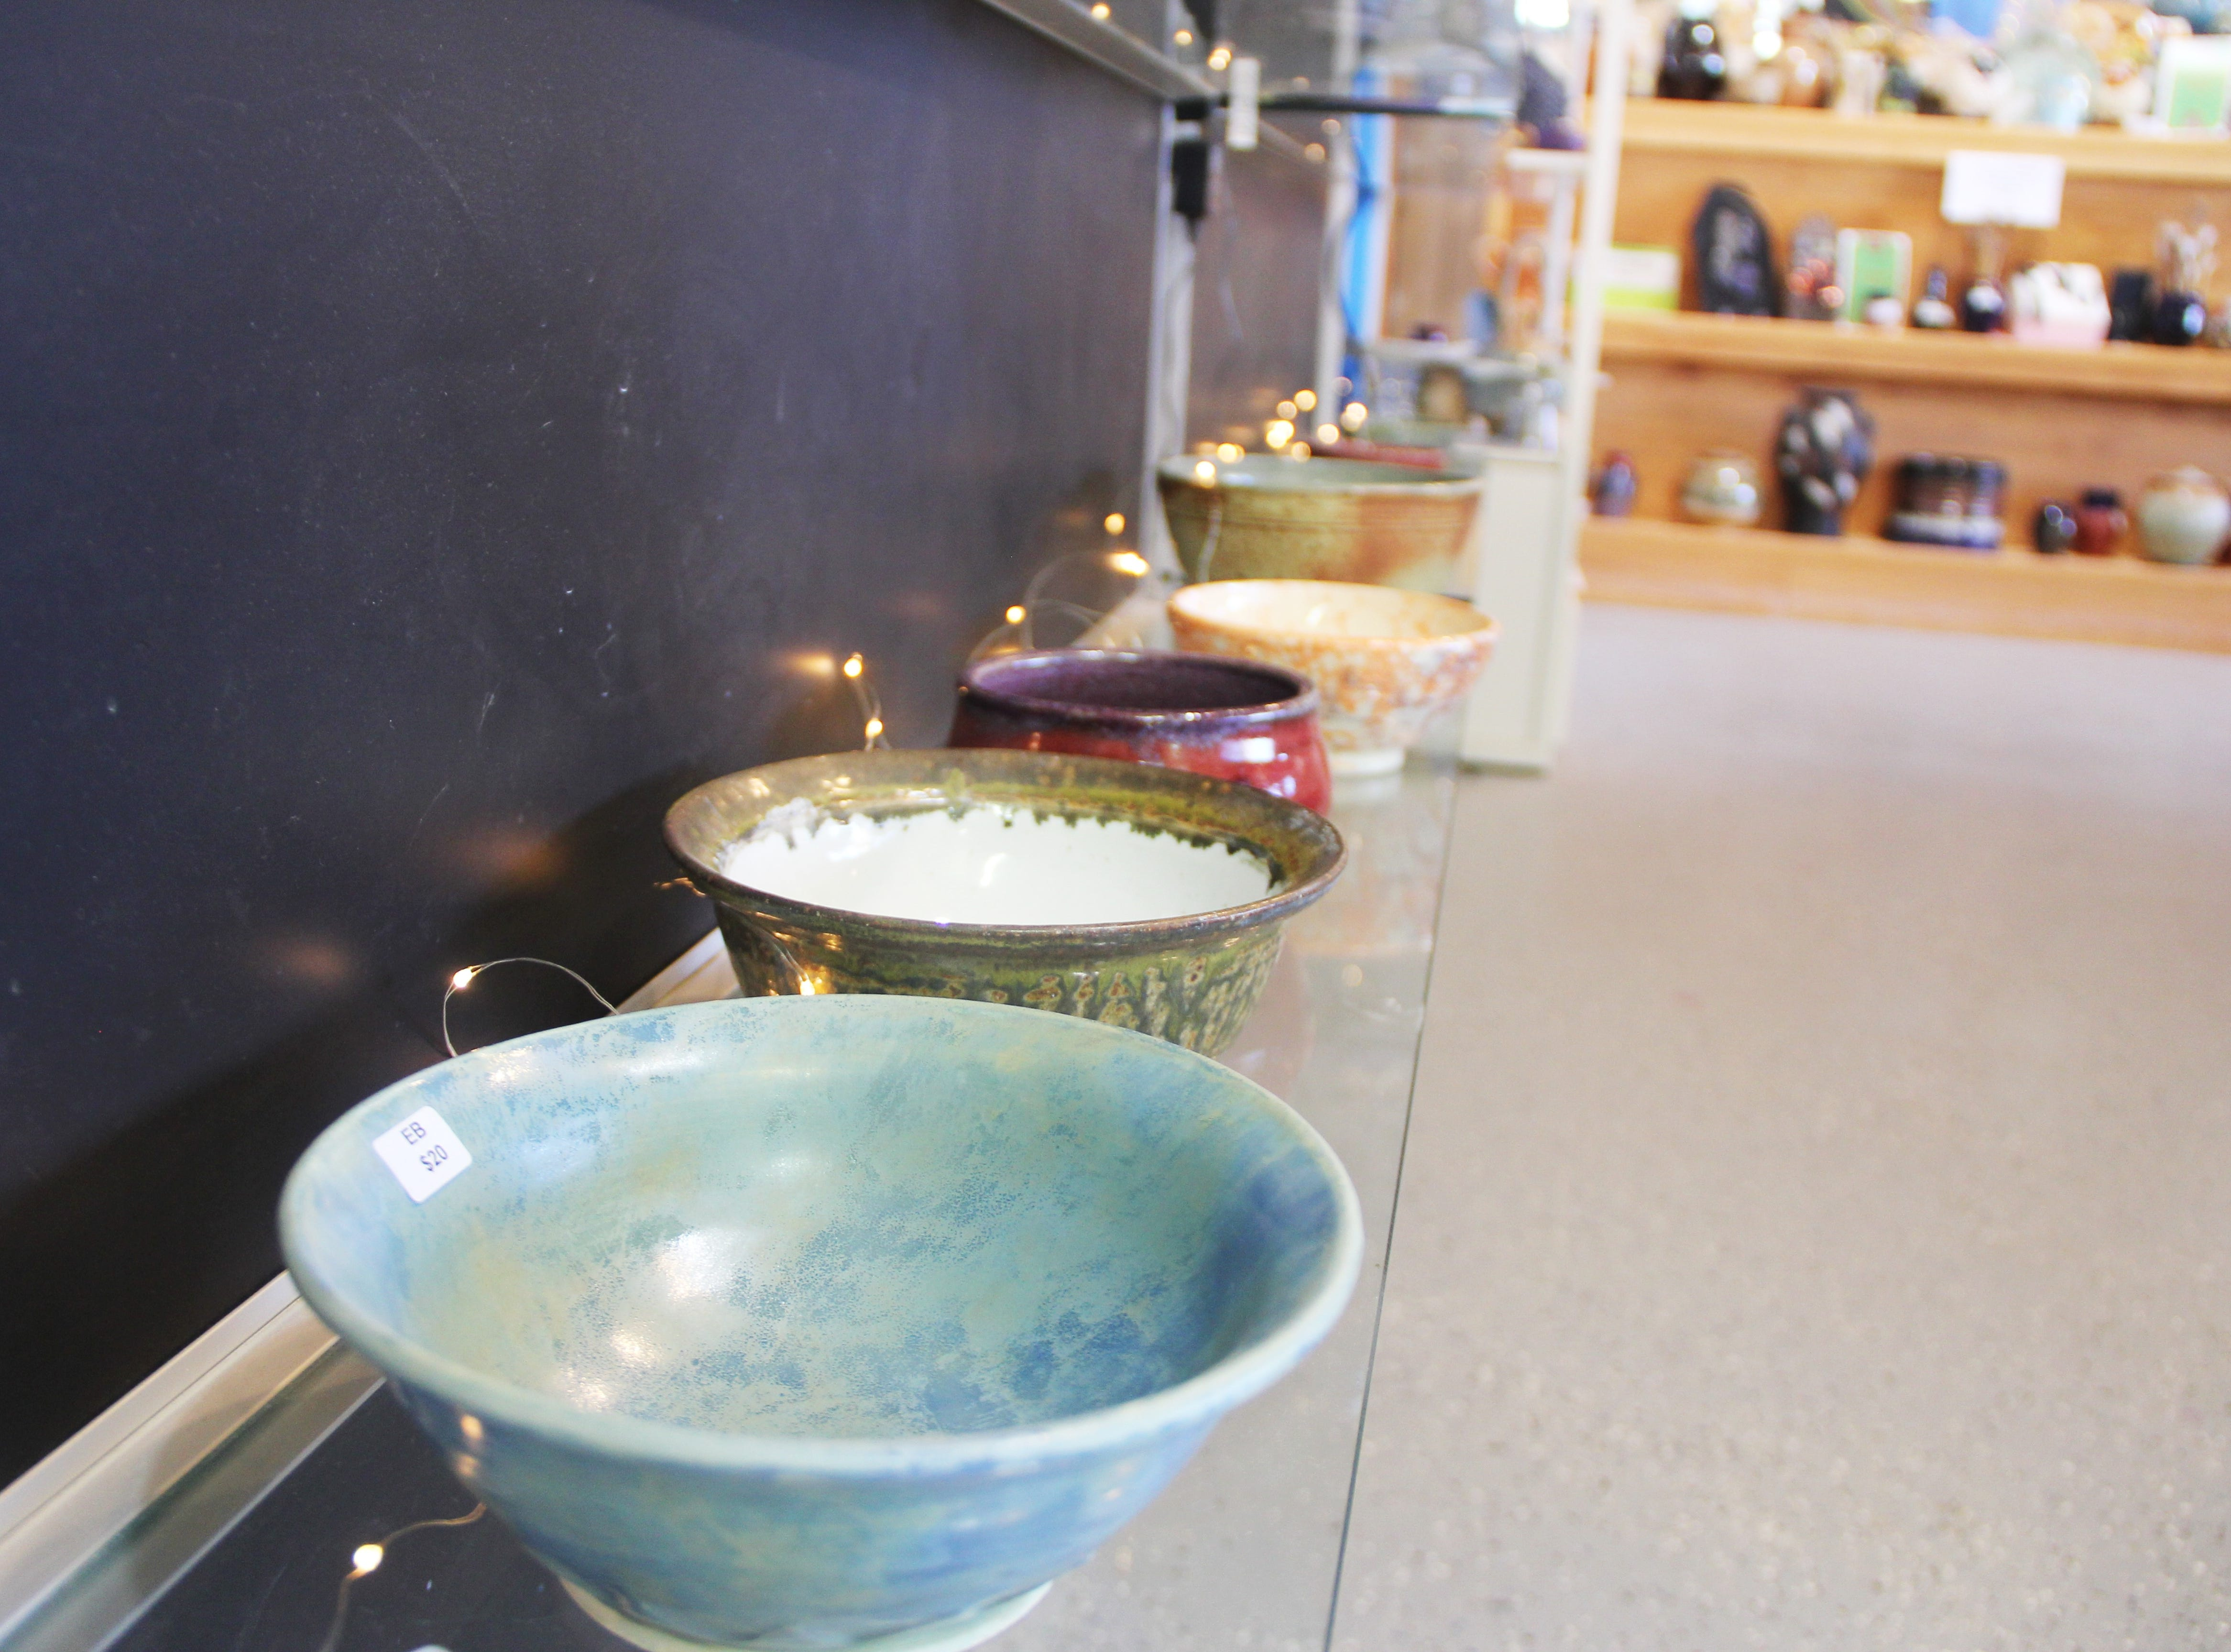 A row of bowls on the wall at the Willamette Art Center's Empty Bowls fundraiser on Saturday, Nov. 17. Since its inception in 2007, this fundraiser has raised more than $180,000 for the Marion-Polk Food Share.